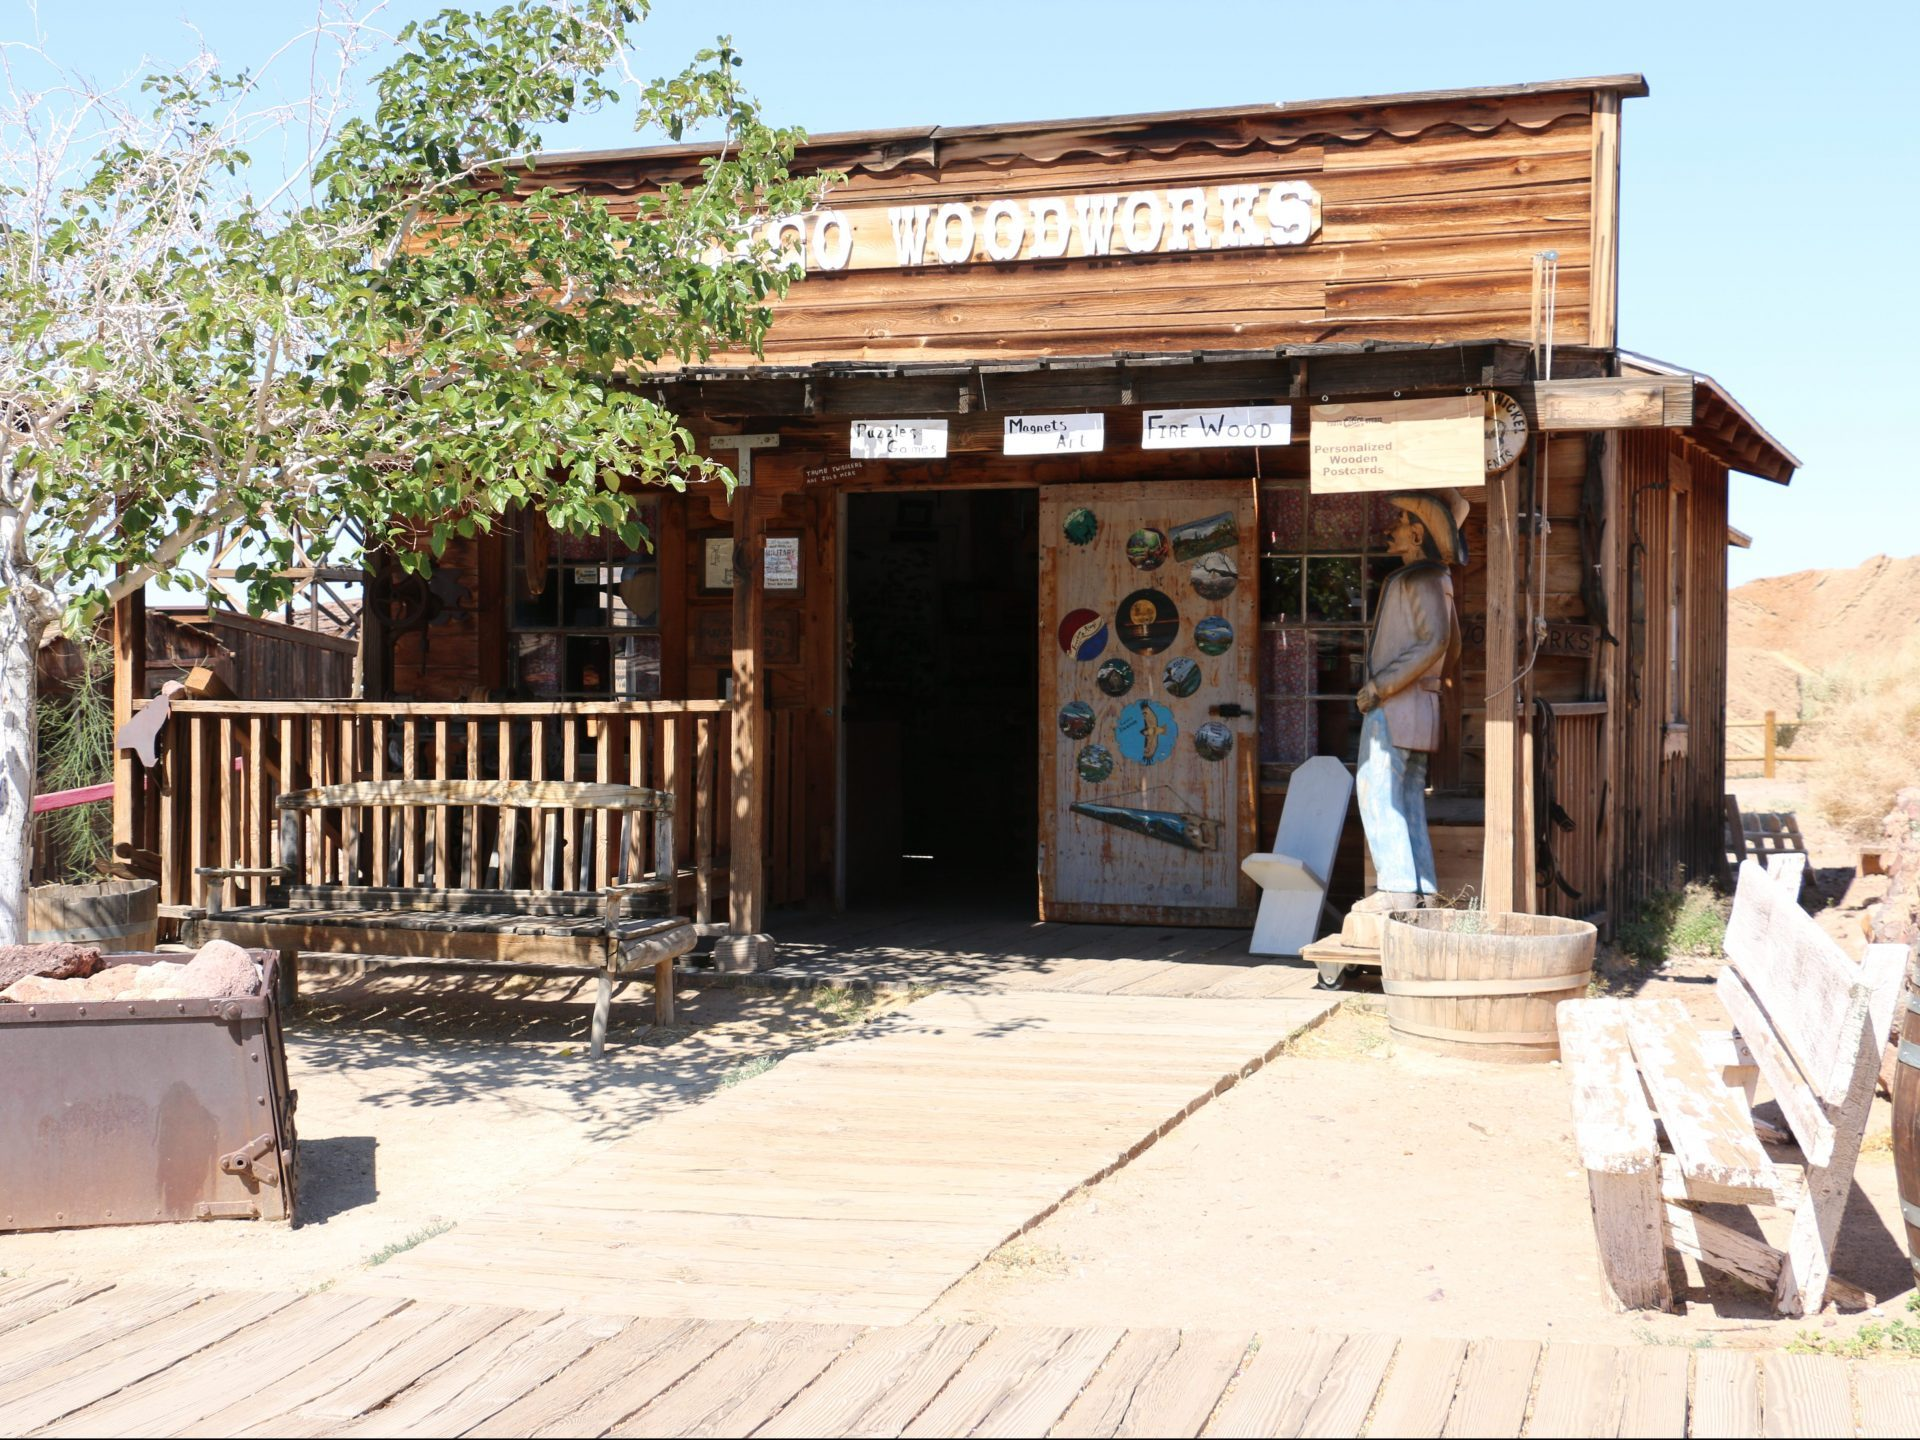 Calico Woodworks at Calico